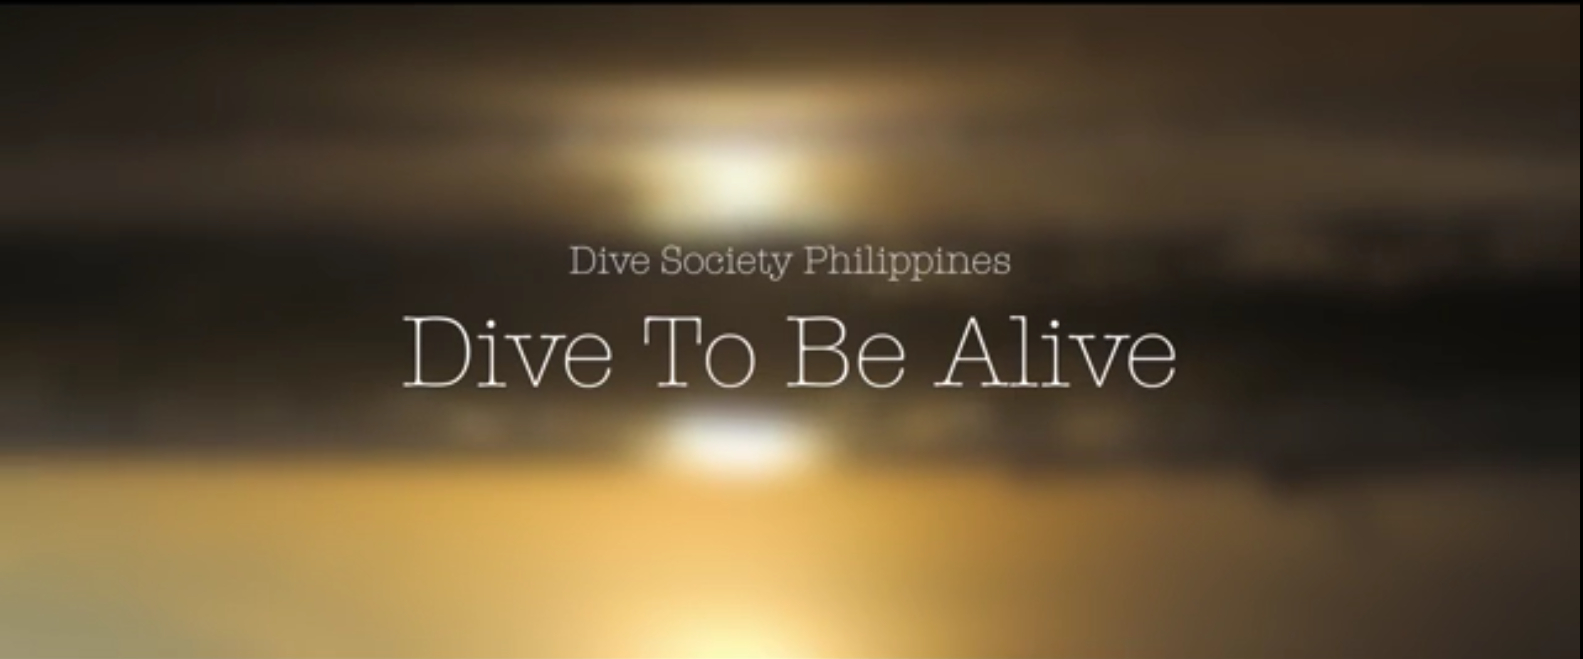 Dive To Be Alive